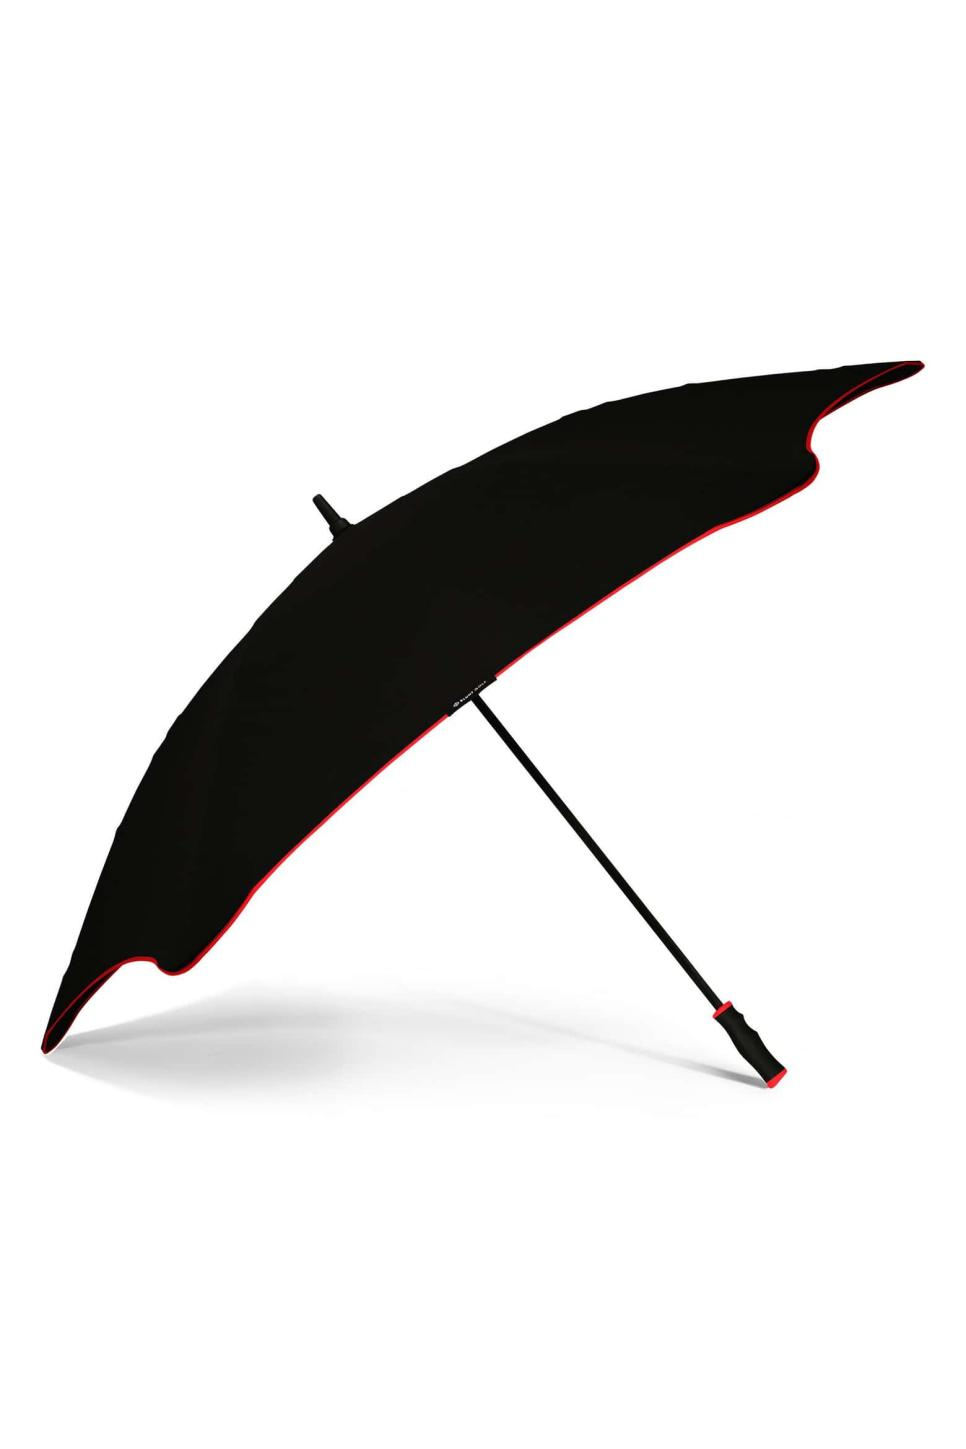 Blunt Golf Umbrella.jpeg